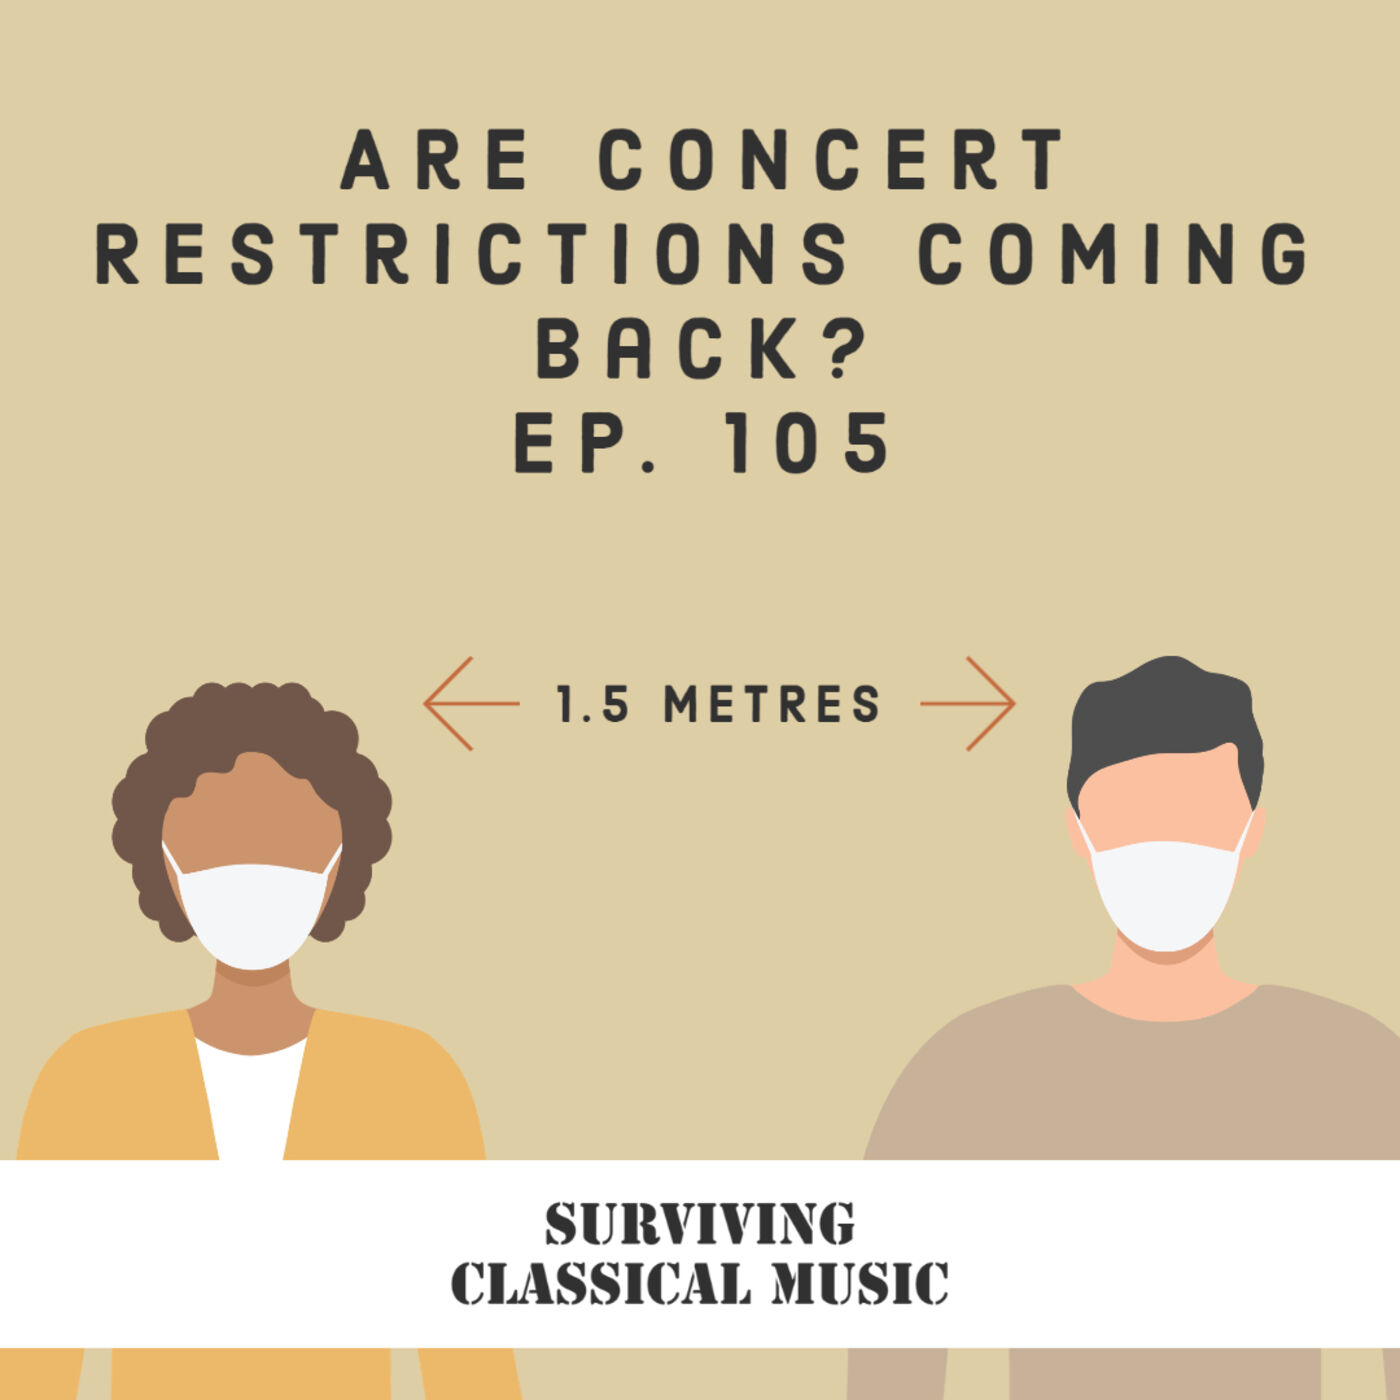 Are Concert Restrictions Coming Back?